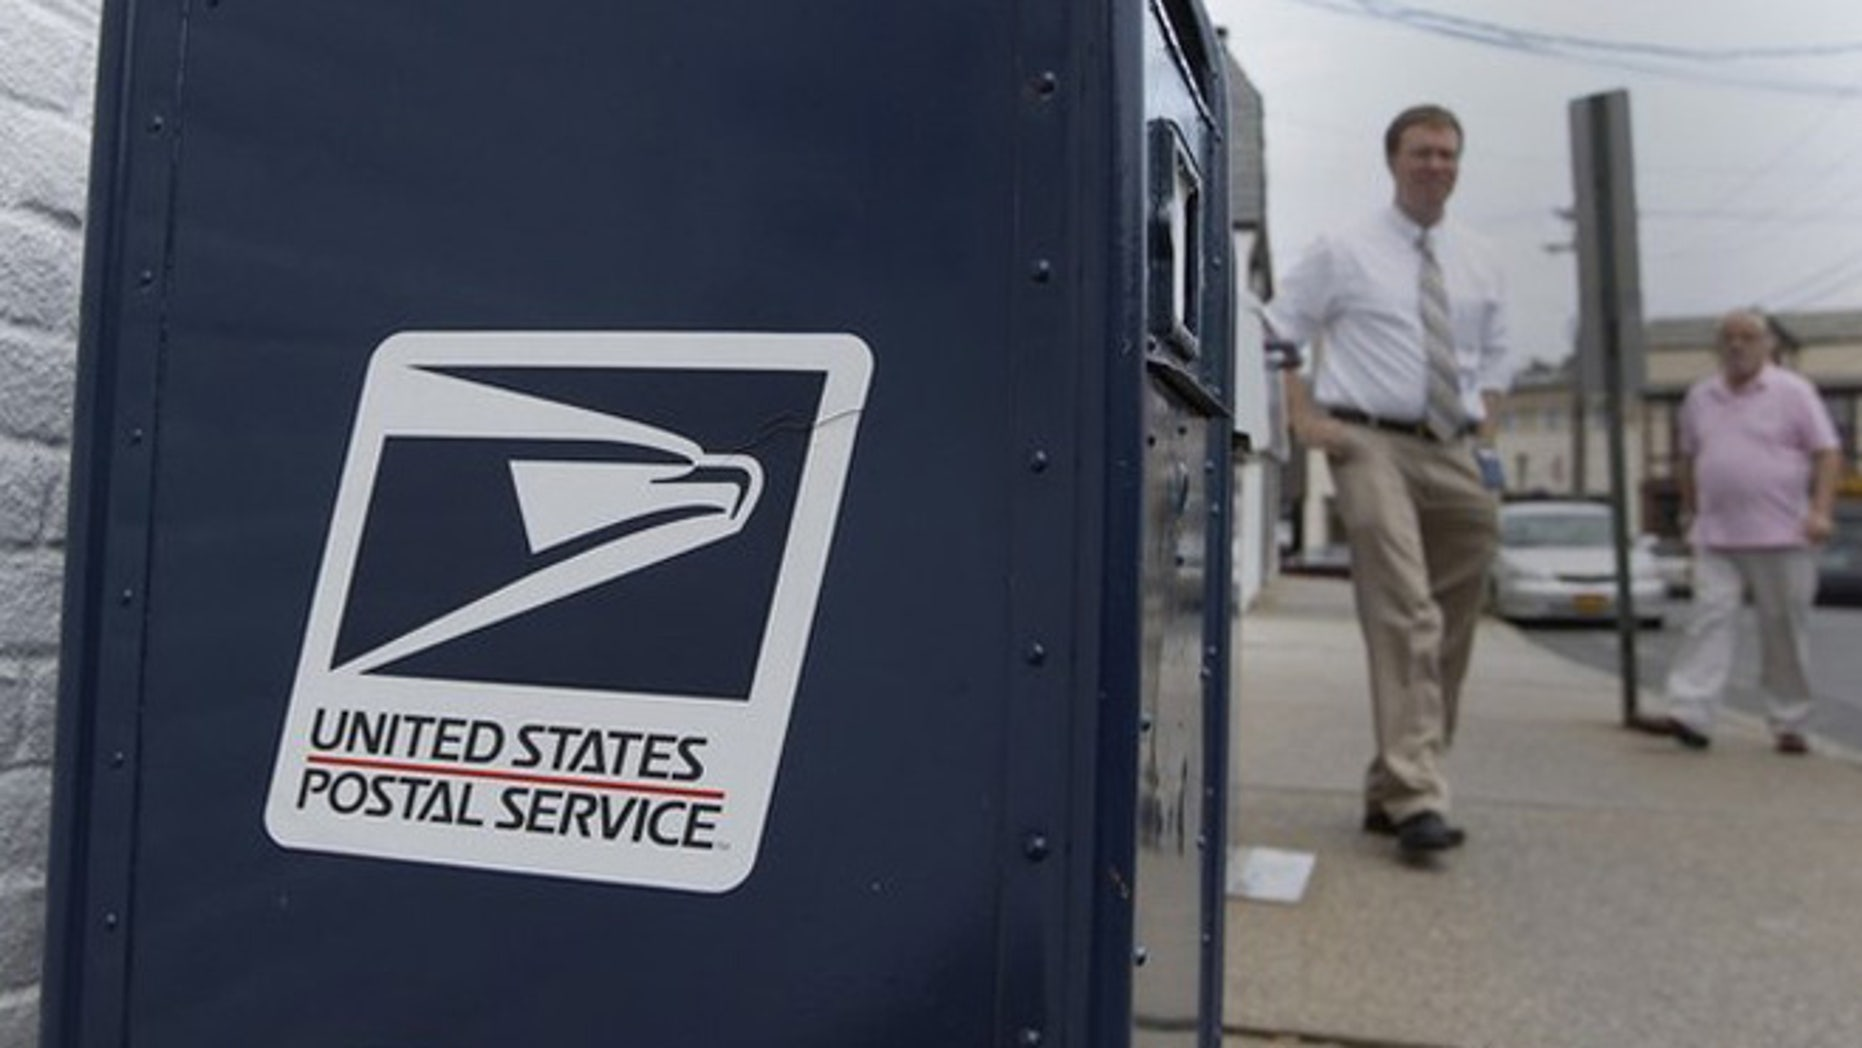 Aug. 1, 2012: A United Sates Postal Service mailbox is seen in Manhasset, N.Y.